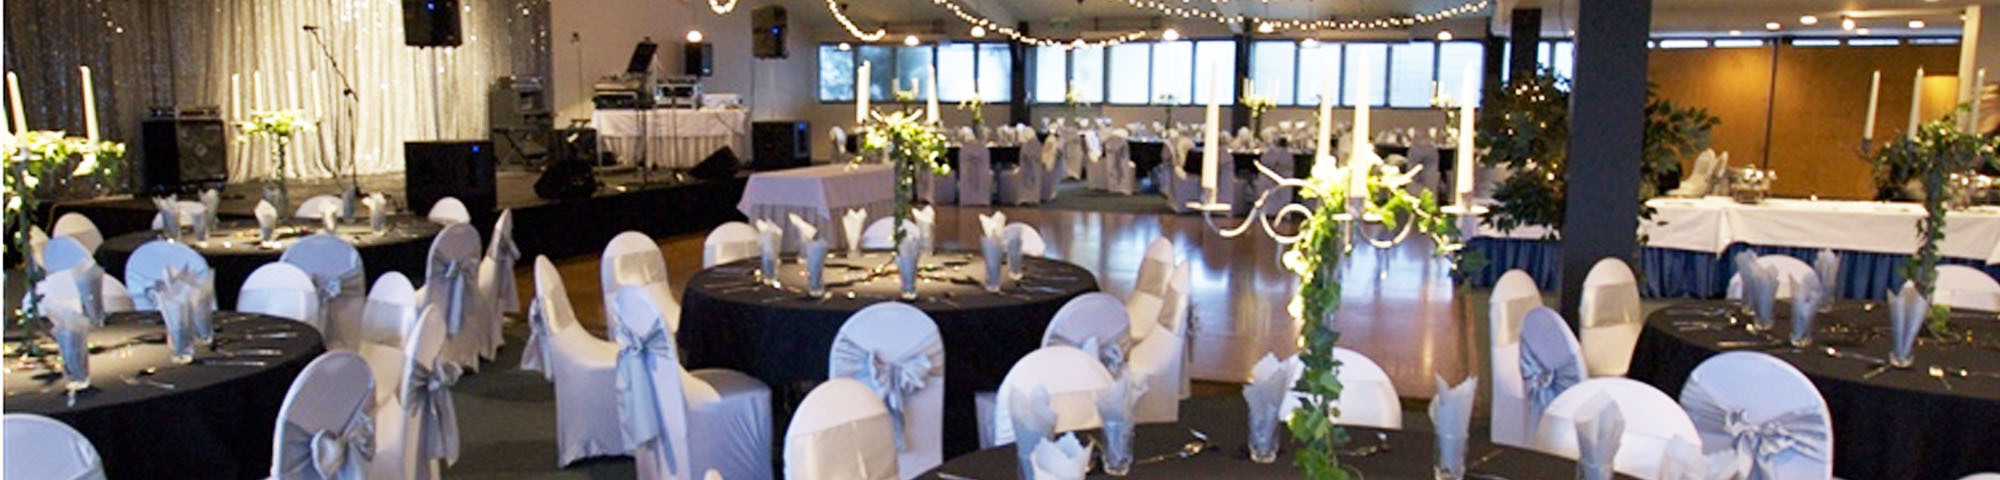 Wedding catering auckland reception venue catering wedding reception party and corporate event venue in central auckland and professional catering available auckland wide junglespirit Image collections